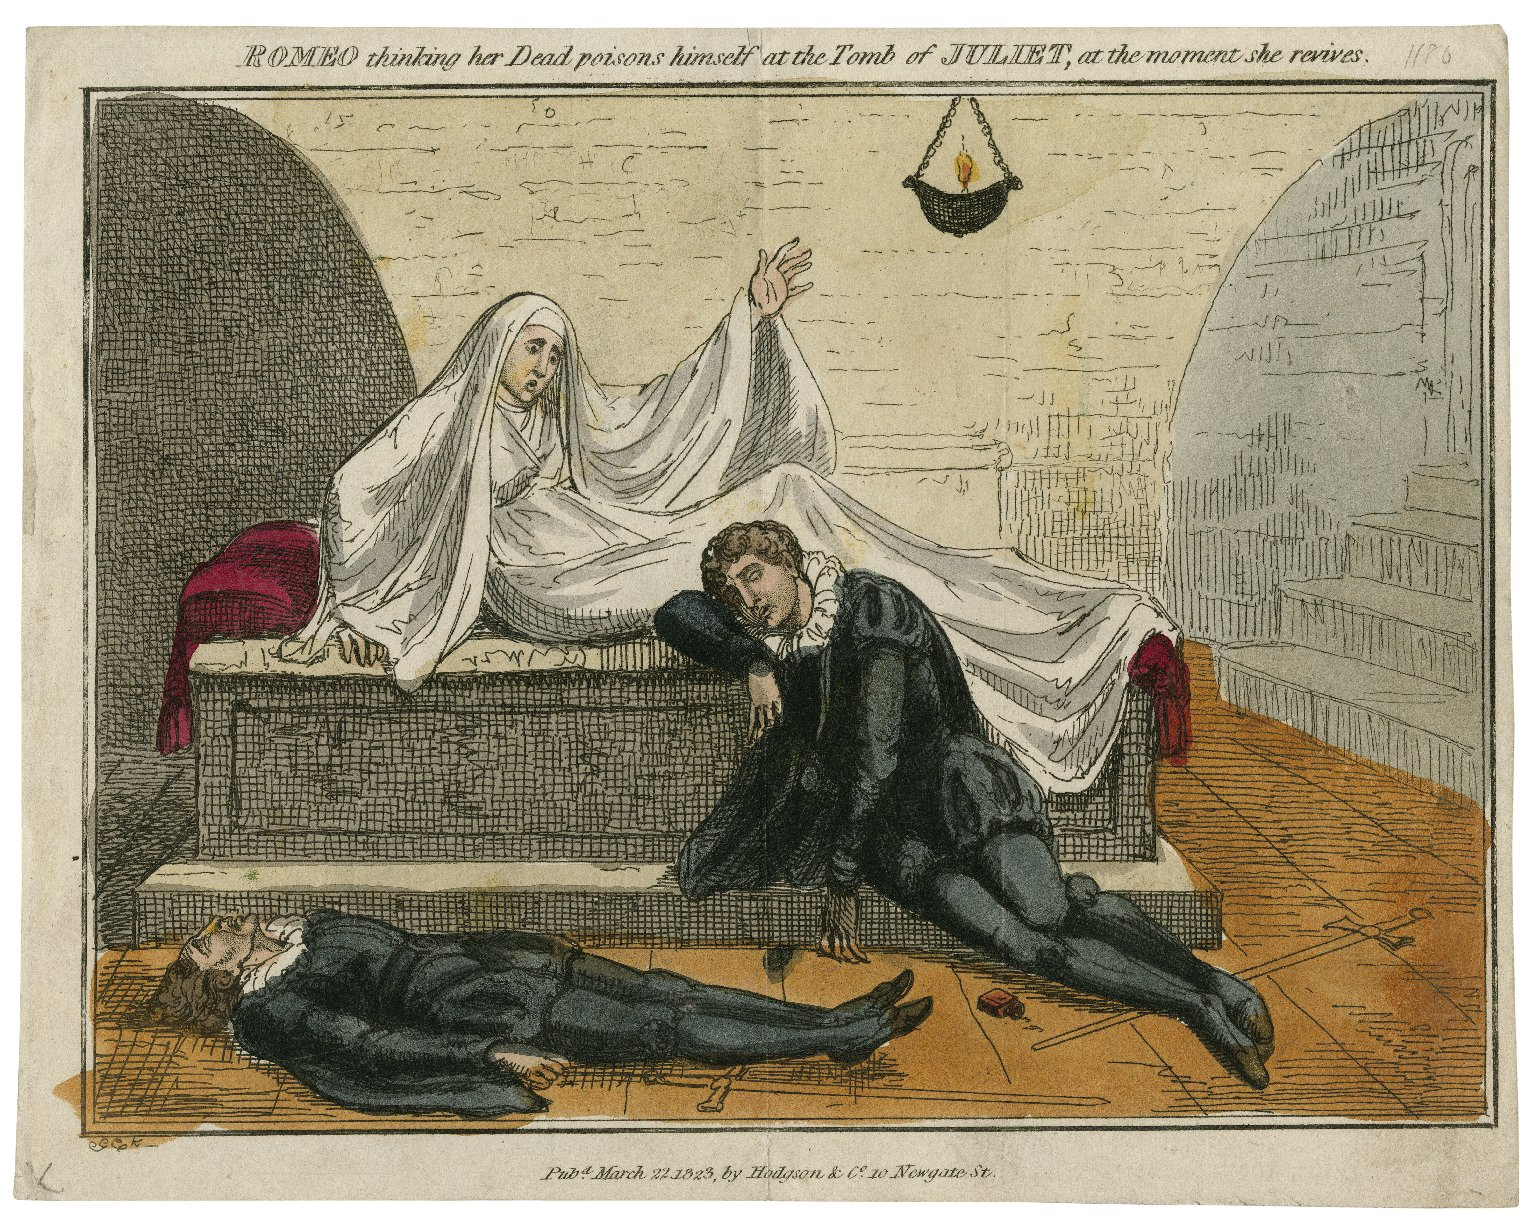 Romeo thinking her dead poisons himself ... [Romeo and Juliet, act V, scene 3] [graphic] / GCK.